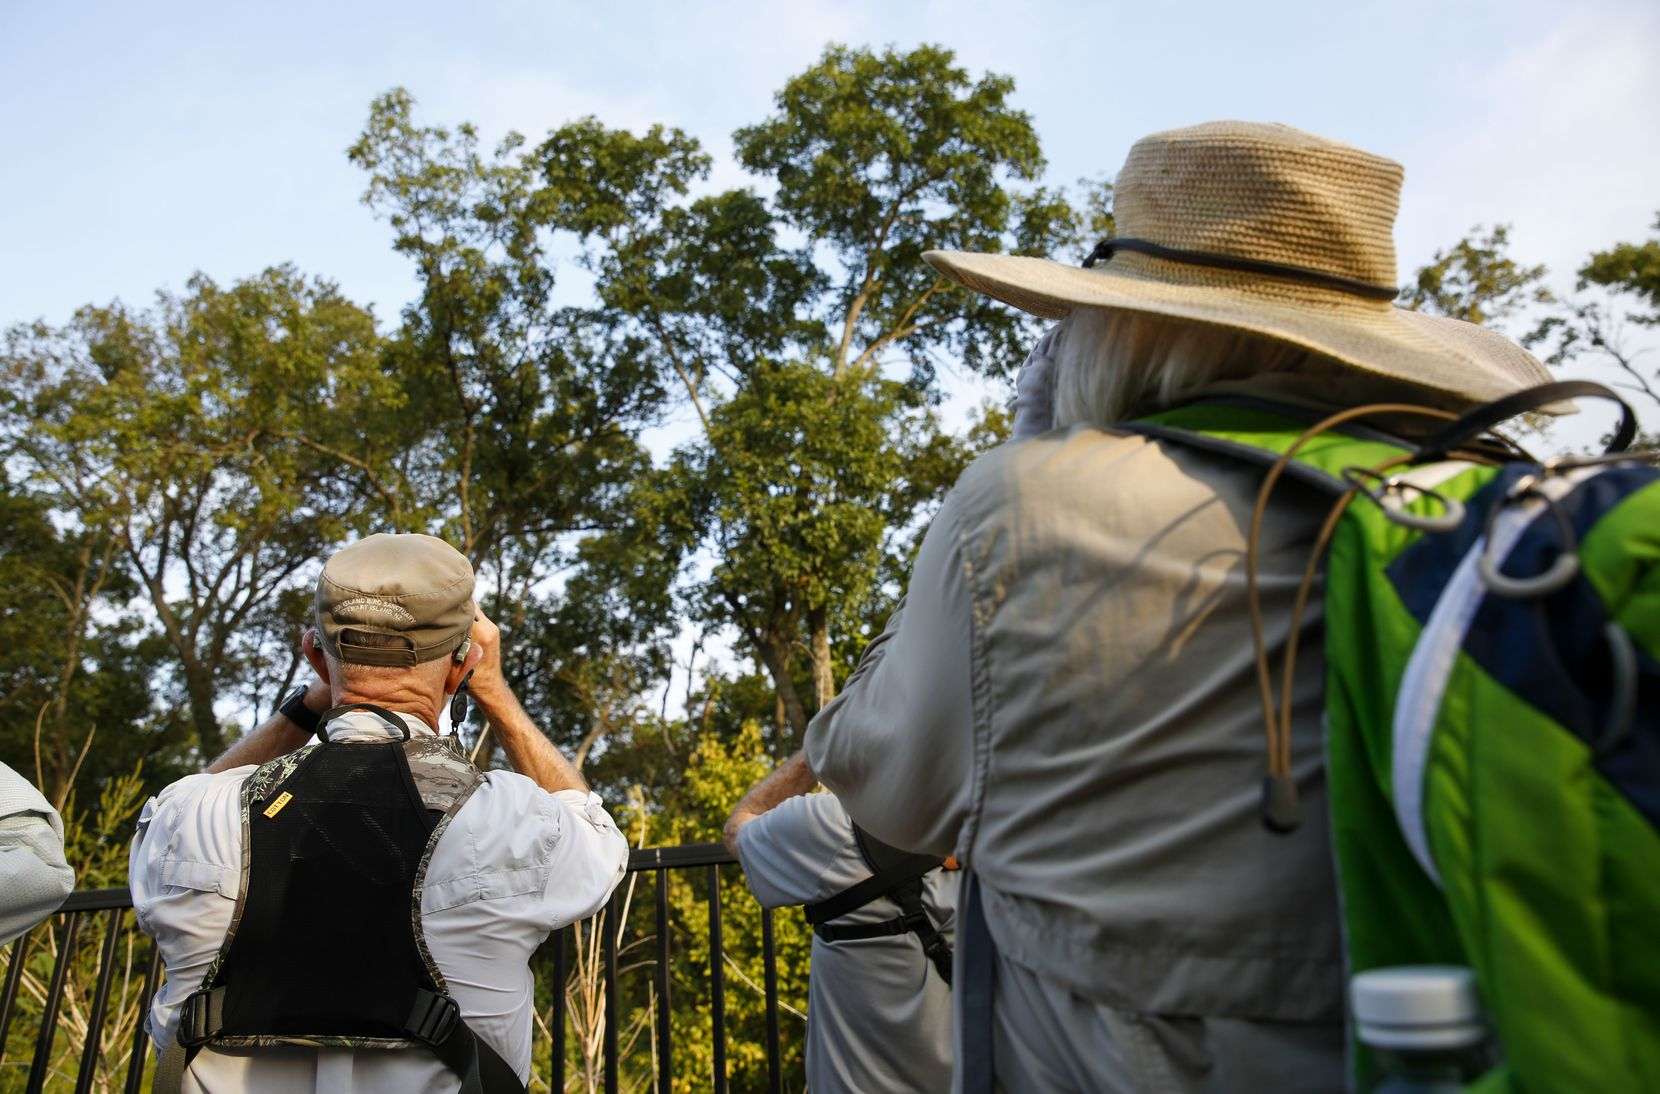 Members of the Prairie and Timbers Audubon Society Chapter of McKinney scan the trees for birds while taking a guided nature tour at the Joppa Preserve in the Trinity Forest in Dallas Saturday September 21,  2019.